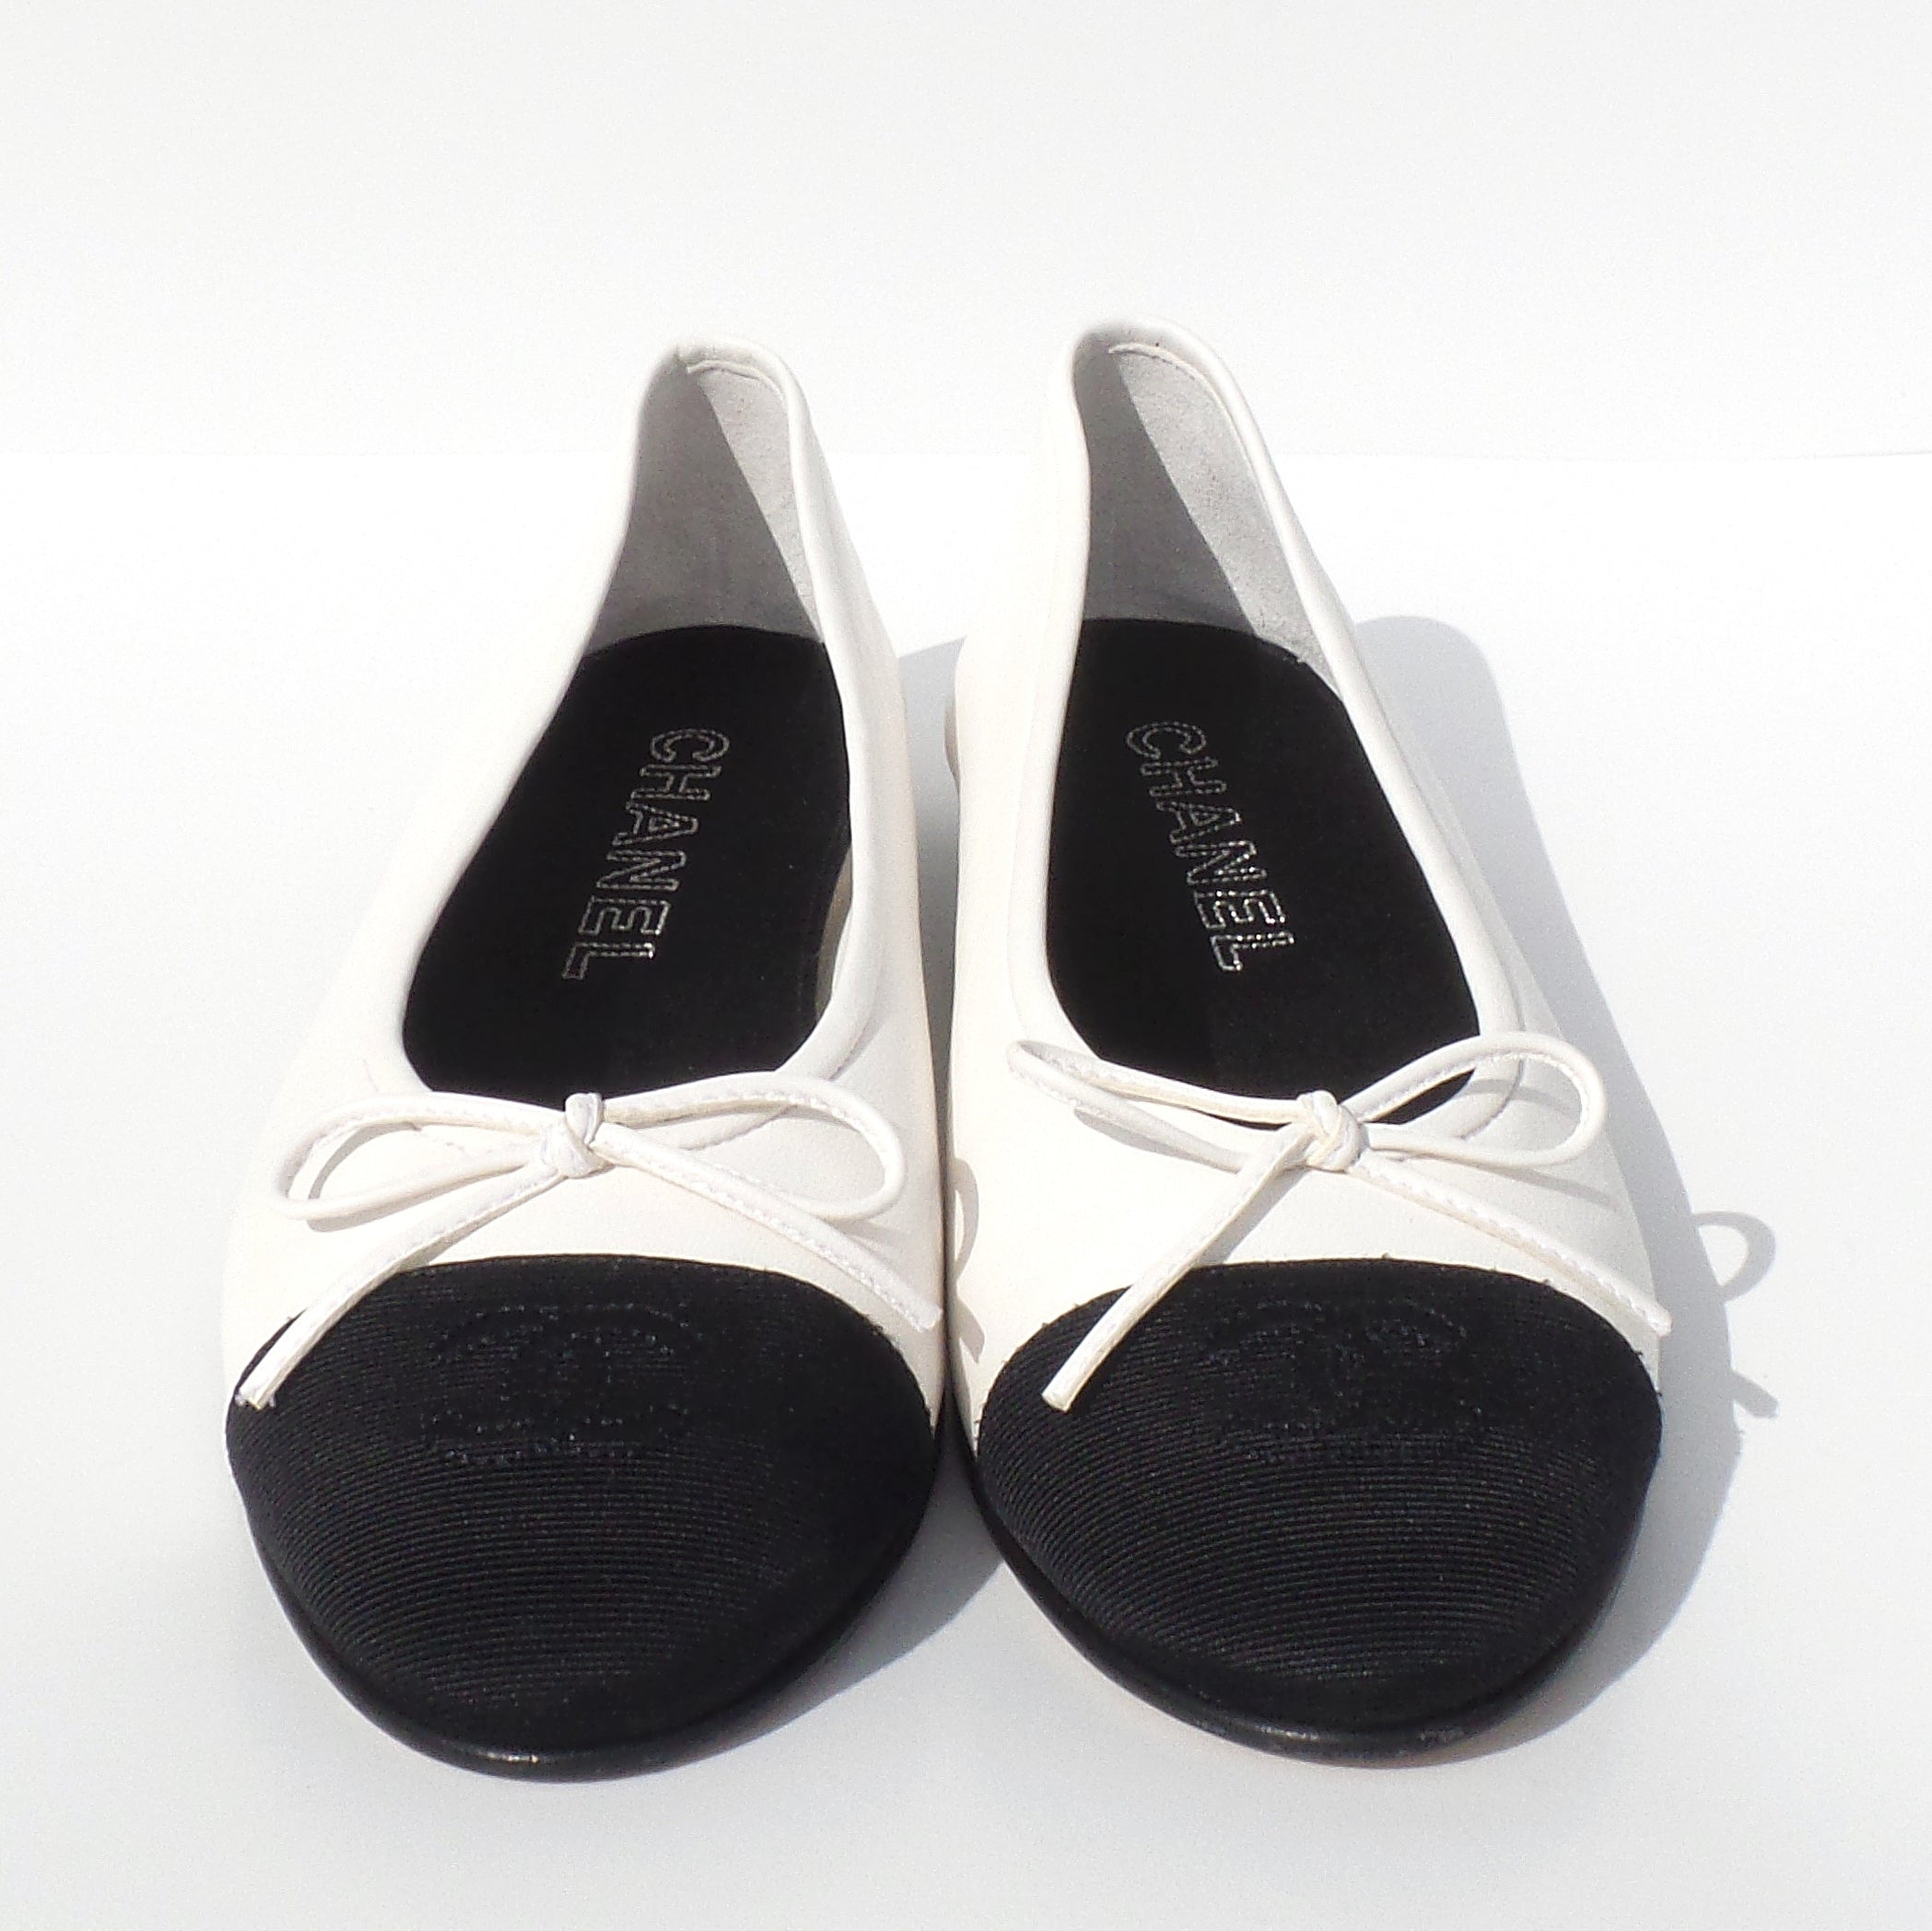 'Sold' CHANEL White Leather Black Grosgrain CC Bow Cap Toe Ballet Flats Ballerinas 38